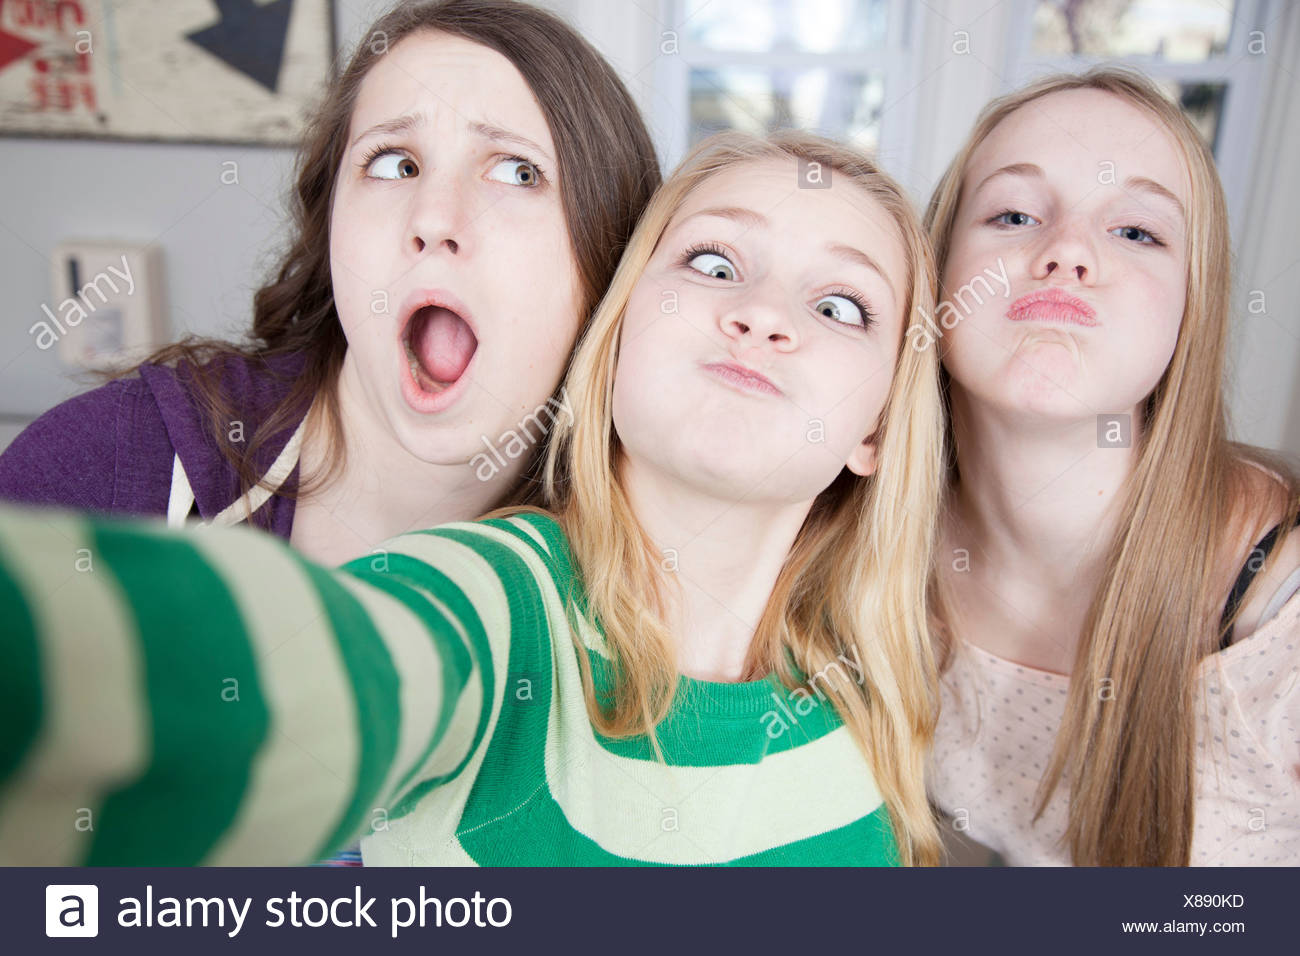 Teenagers pulling funny faces - Stock Image